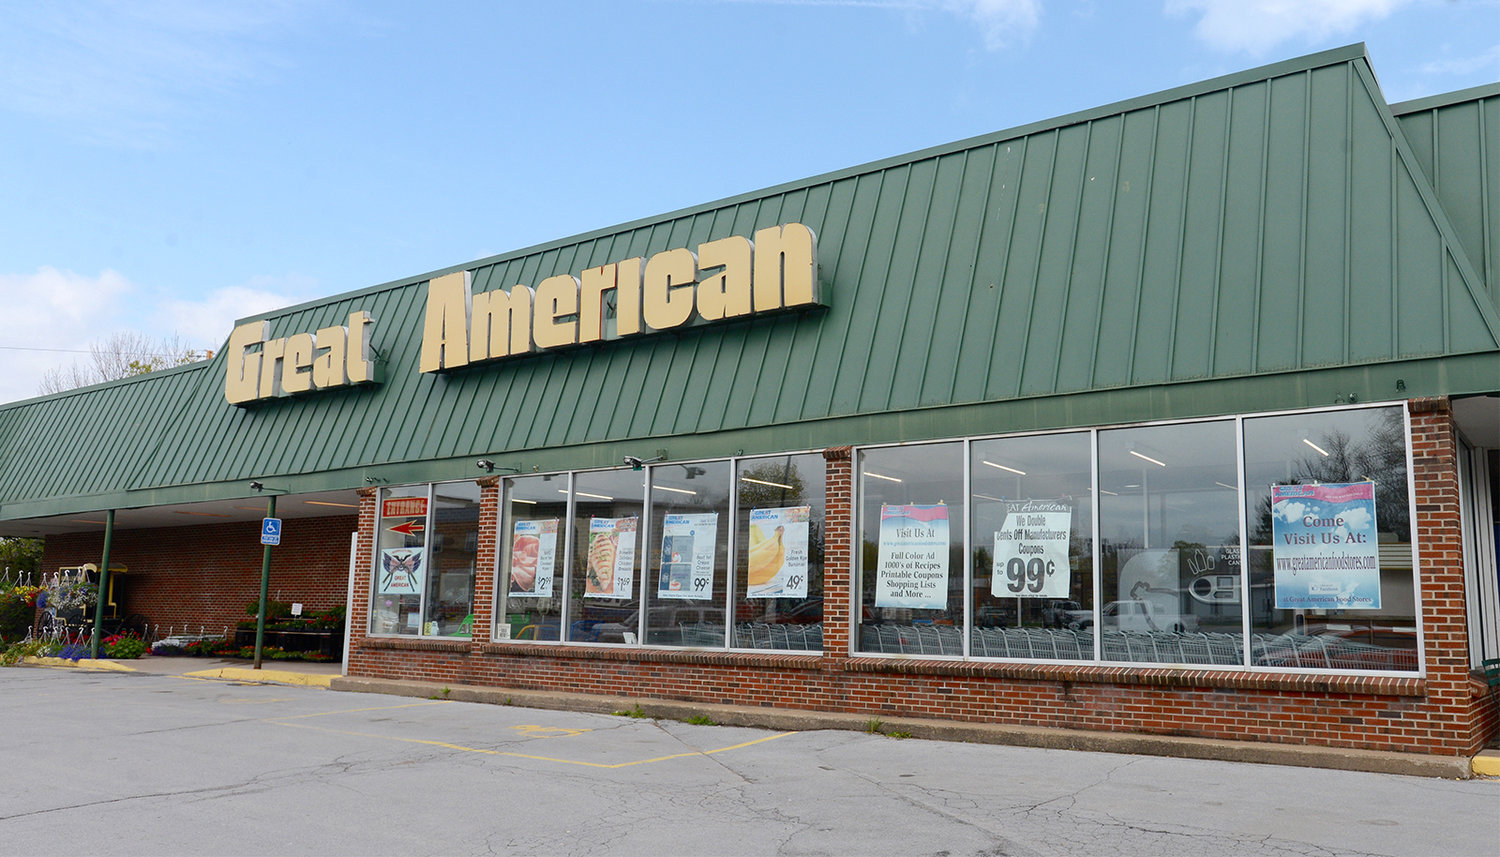 SHUTTING ITS DOORS — The Great American food store, a fixture on Main Street in Boonville for decades, is officially closing its doors June 8. (Sentinel photo by John Clifford)